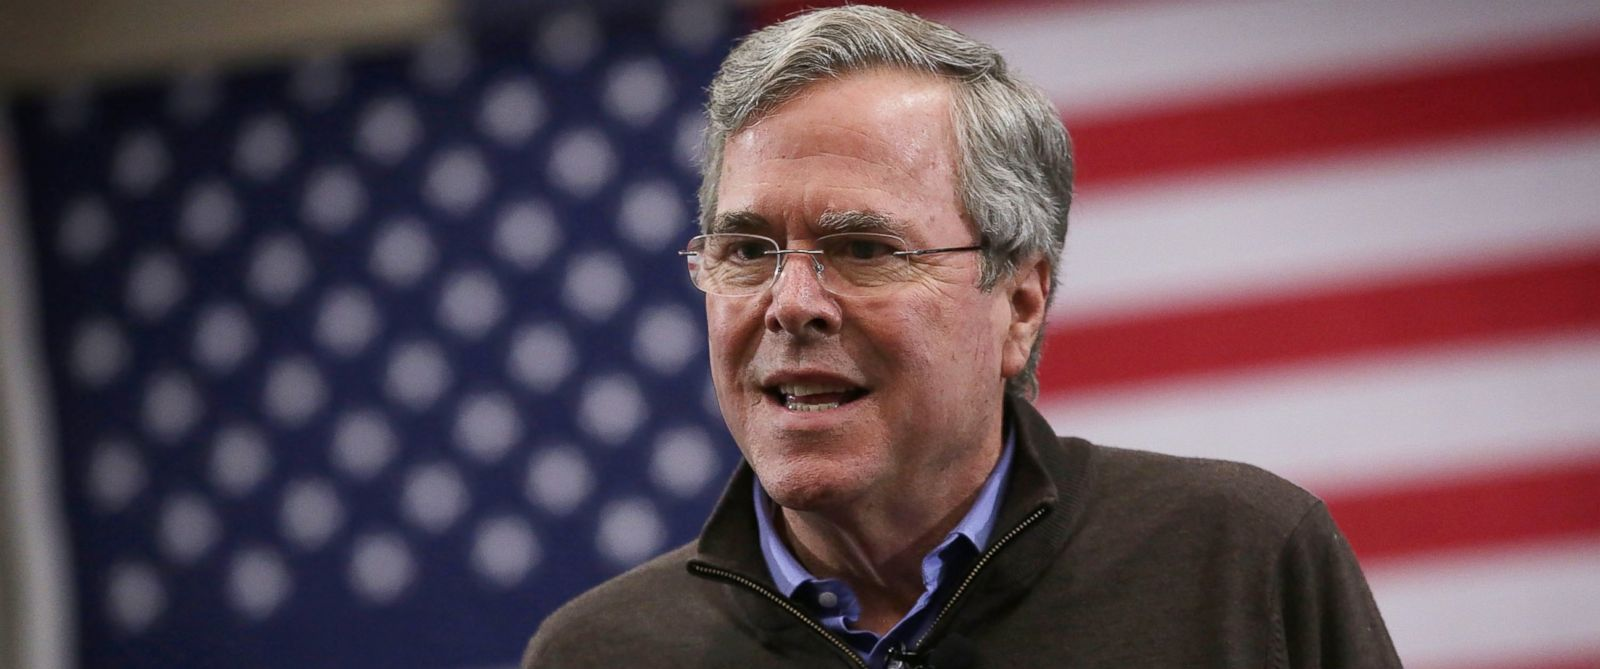 PHOTO: Republican presidential candidate Jeb Bush speaks during a campaign event, Feb. 11, 2016, in Sumter, S.C.